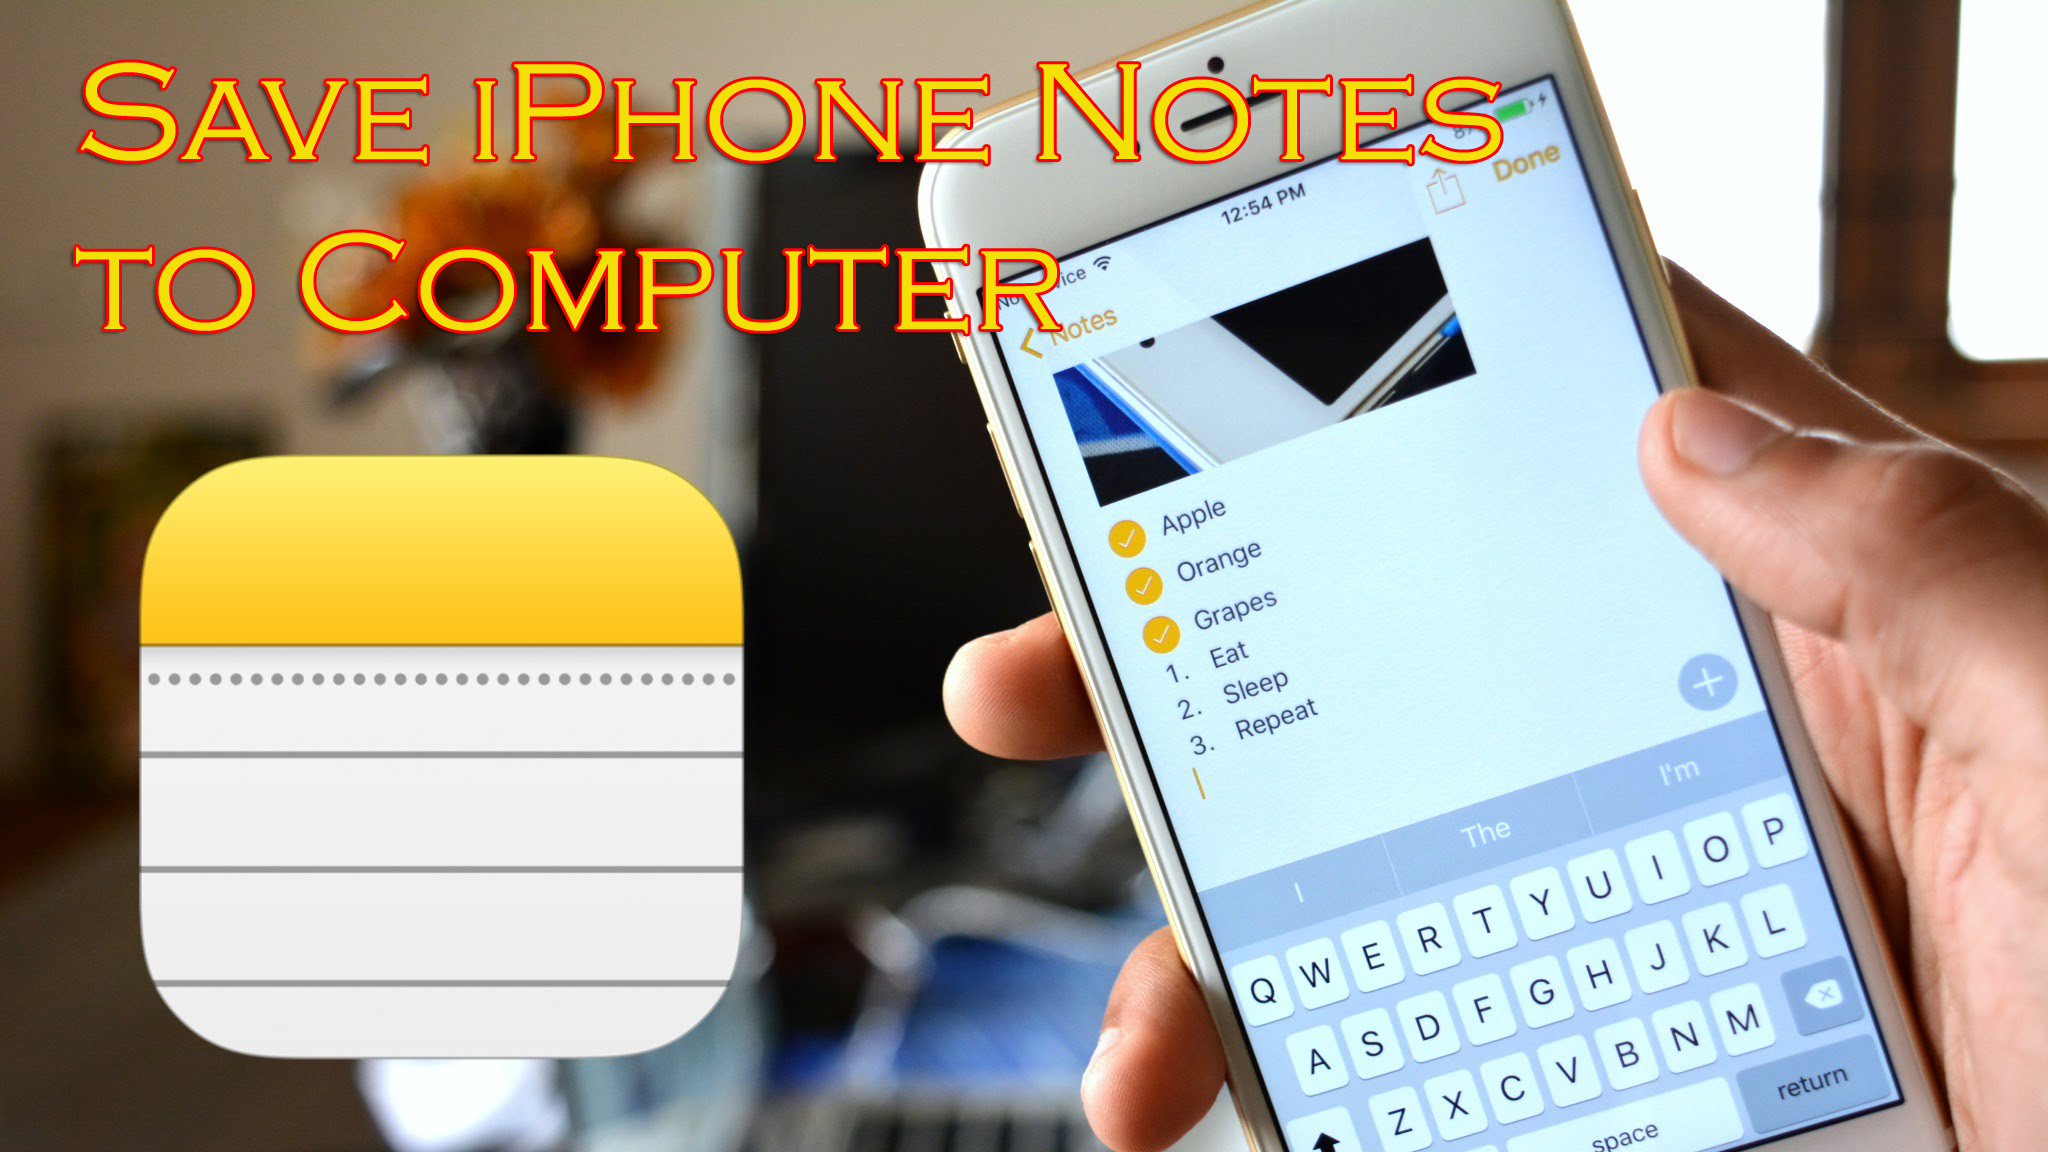 [TIPS]- Best Way to Save iPhone Notes to Computer